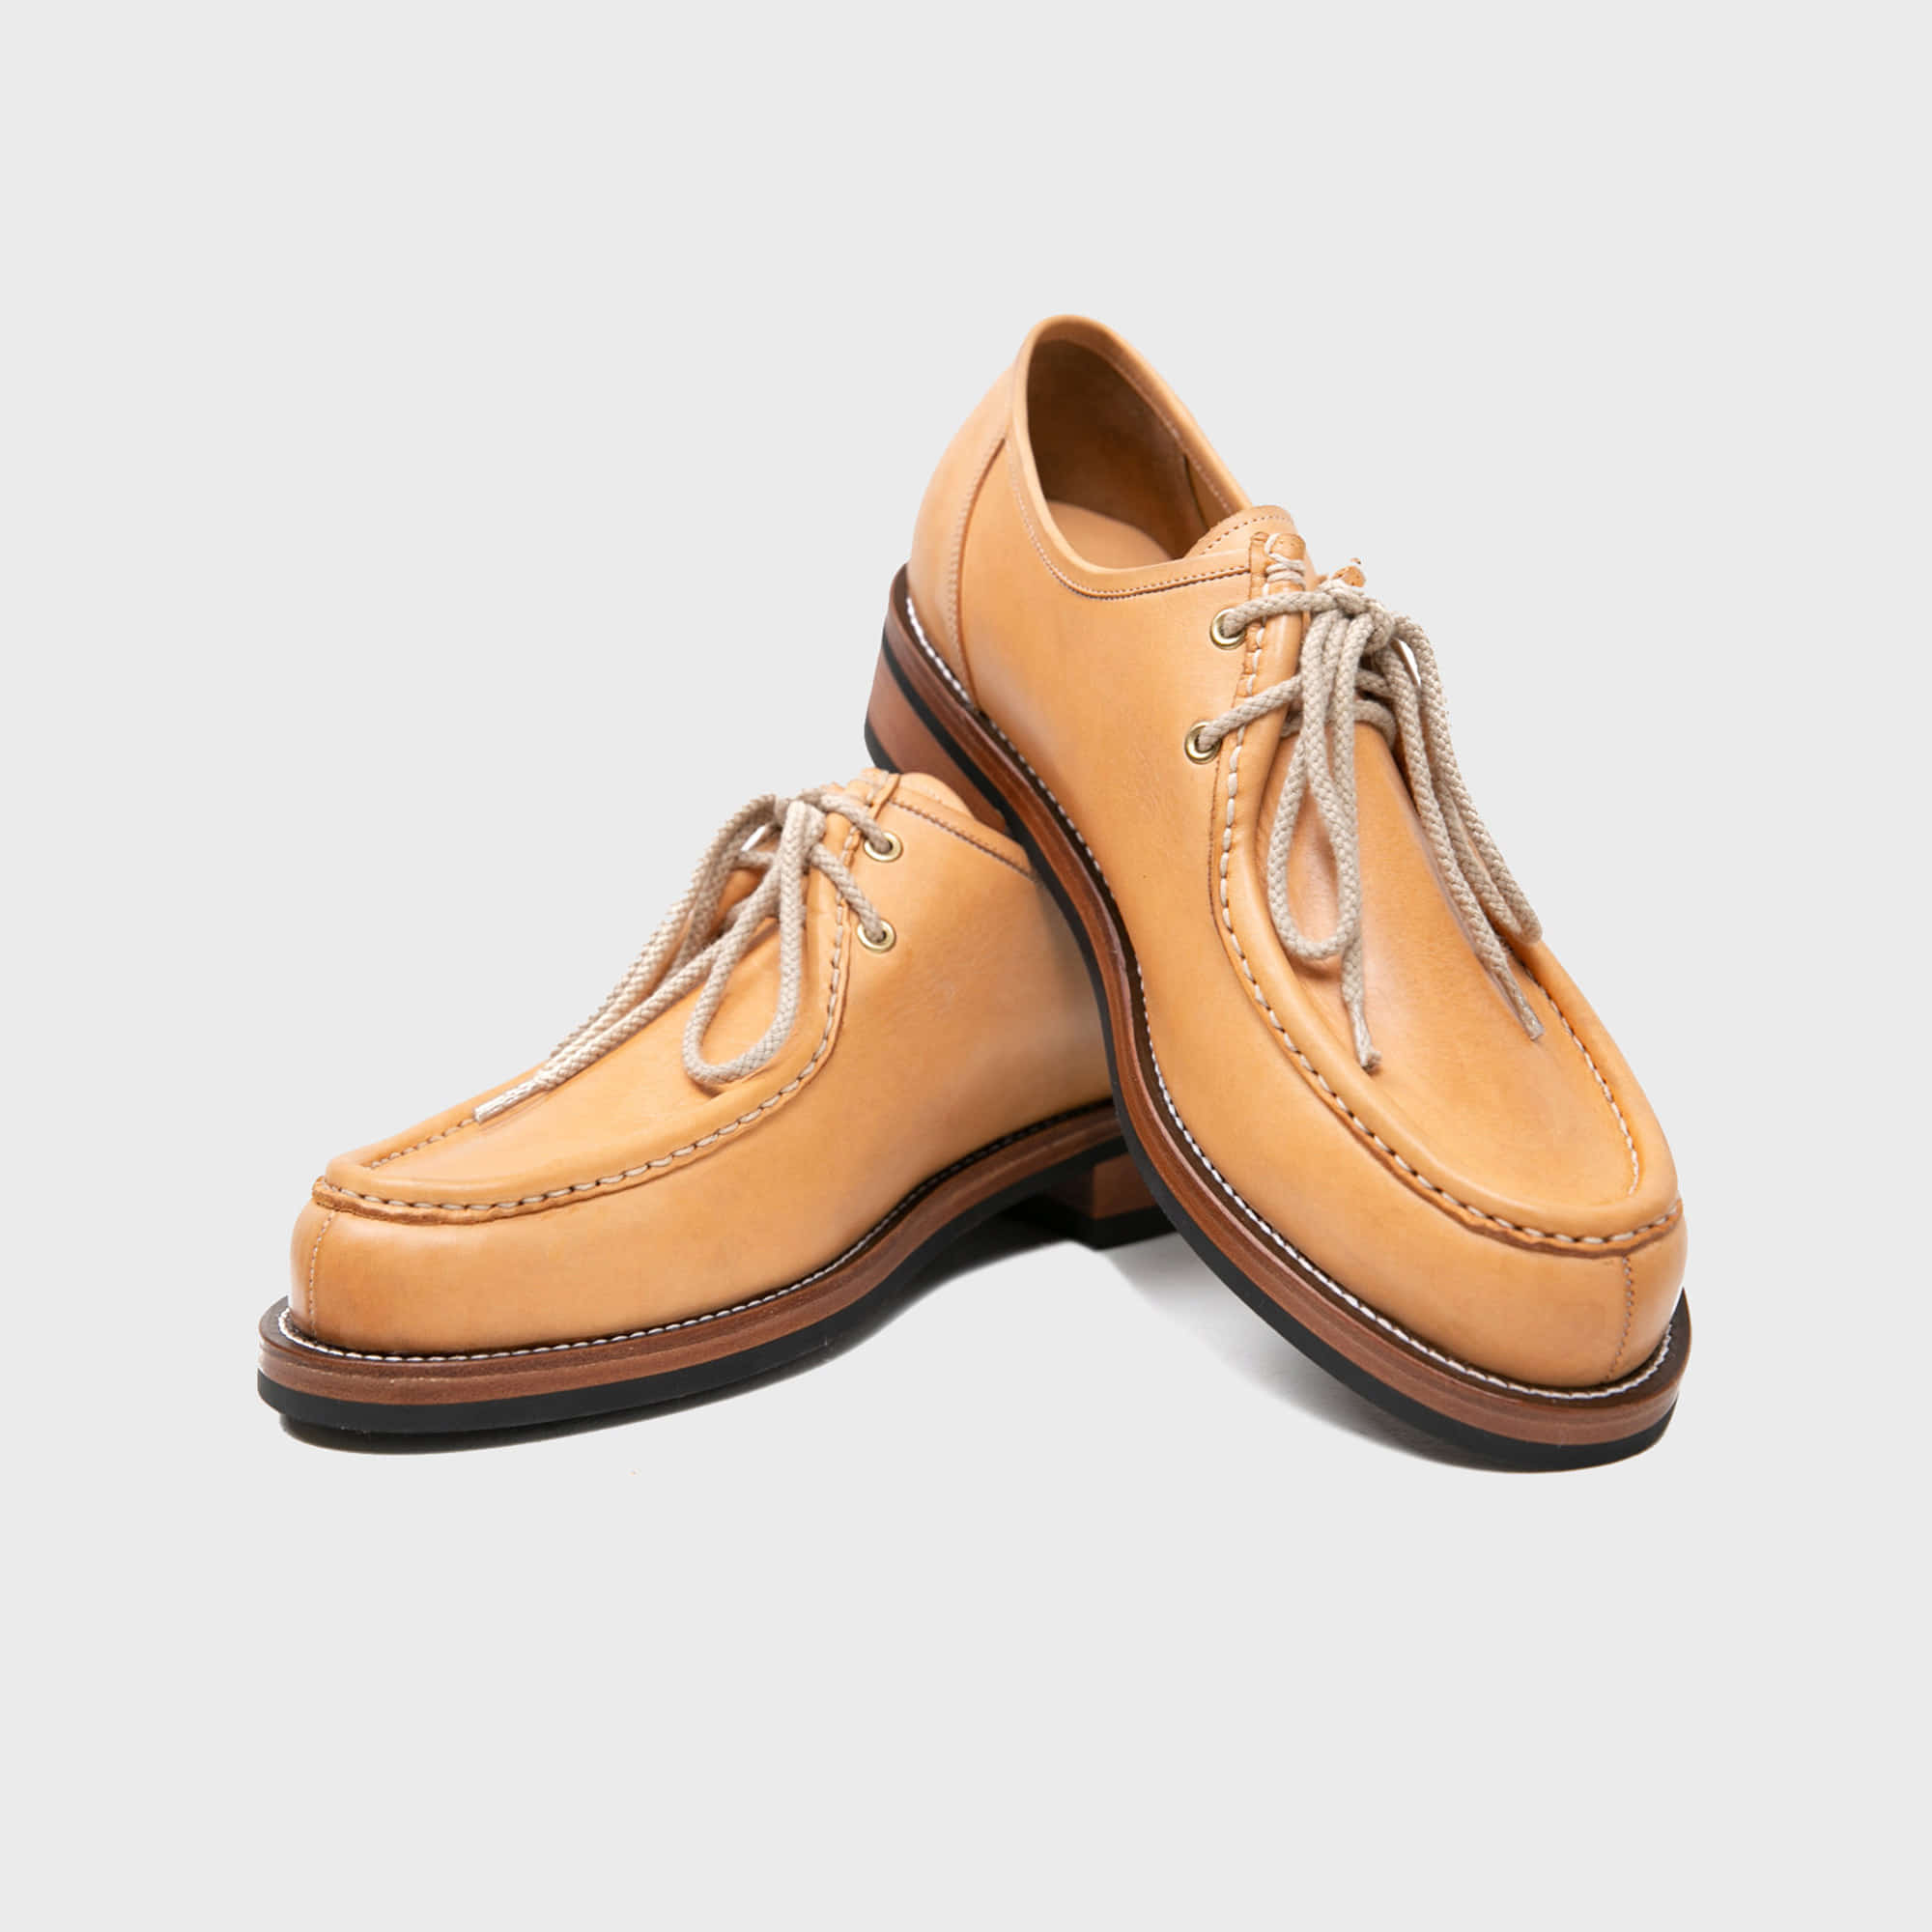 [BILLYS&CO X ANGLAN] Tyrolean Derby Shoes - Natural